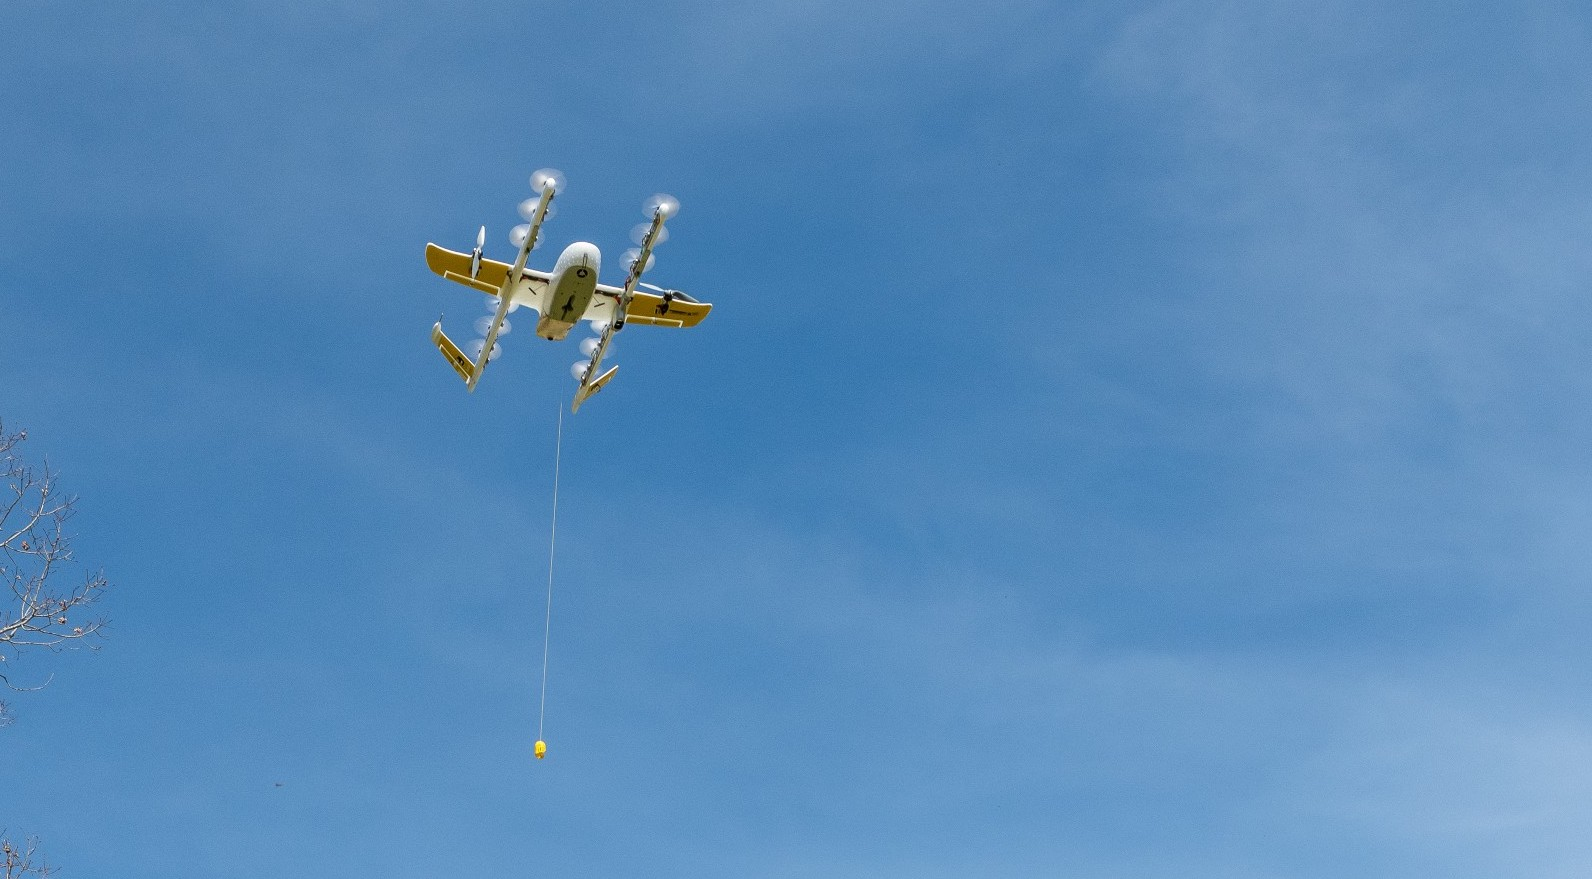 techcrunch.com - Devin Coldewey - Alphabet's Wing gets FAA permission to start delivering by drone